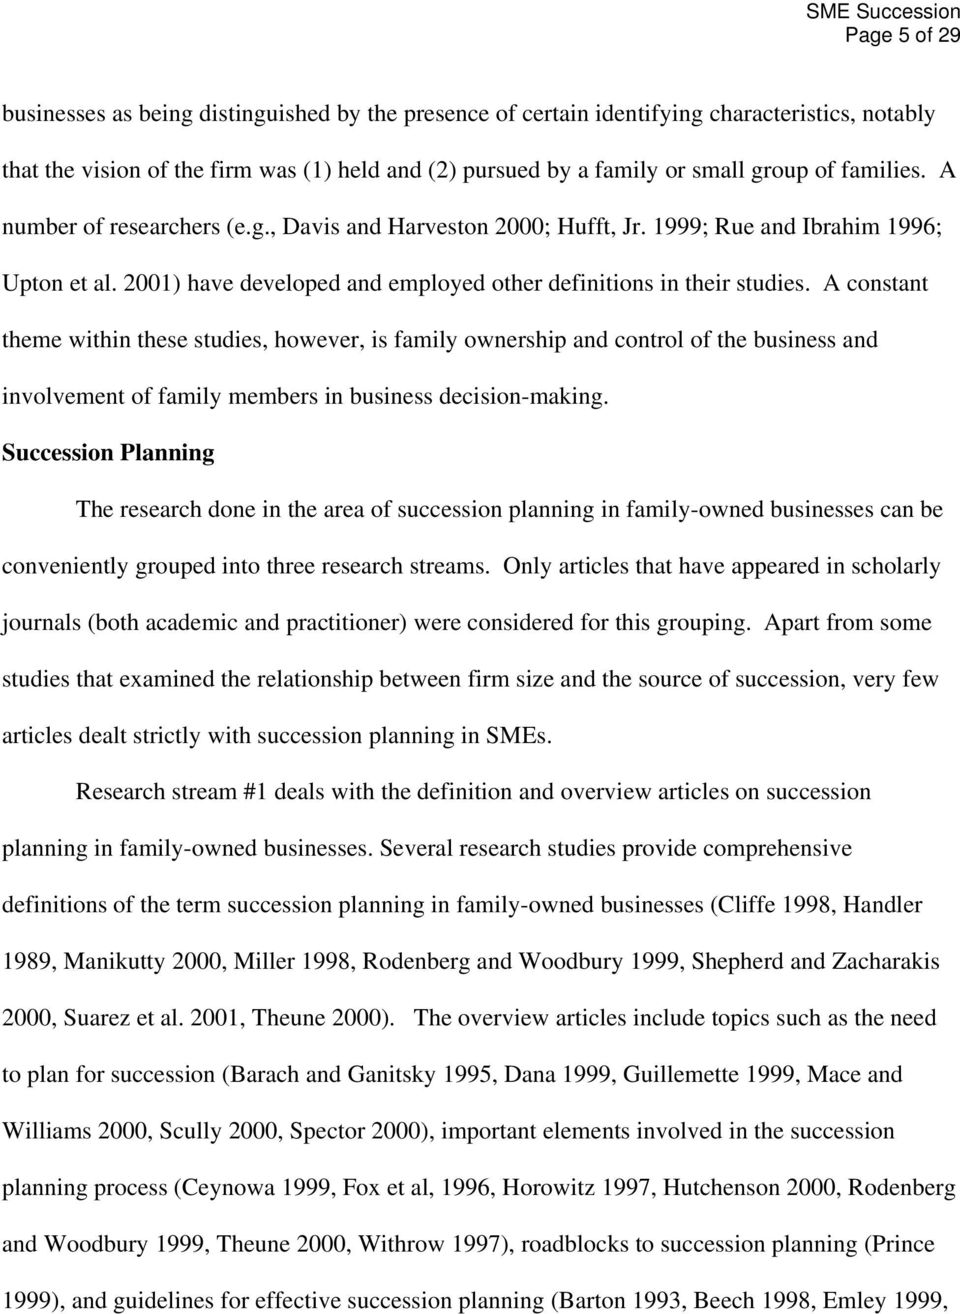 A constant theme within these studies, however, is family ownership and control of the business and involvement of family members in business decision-making.